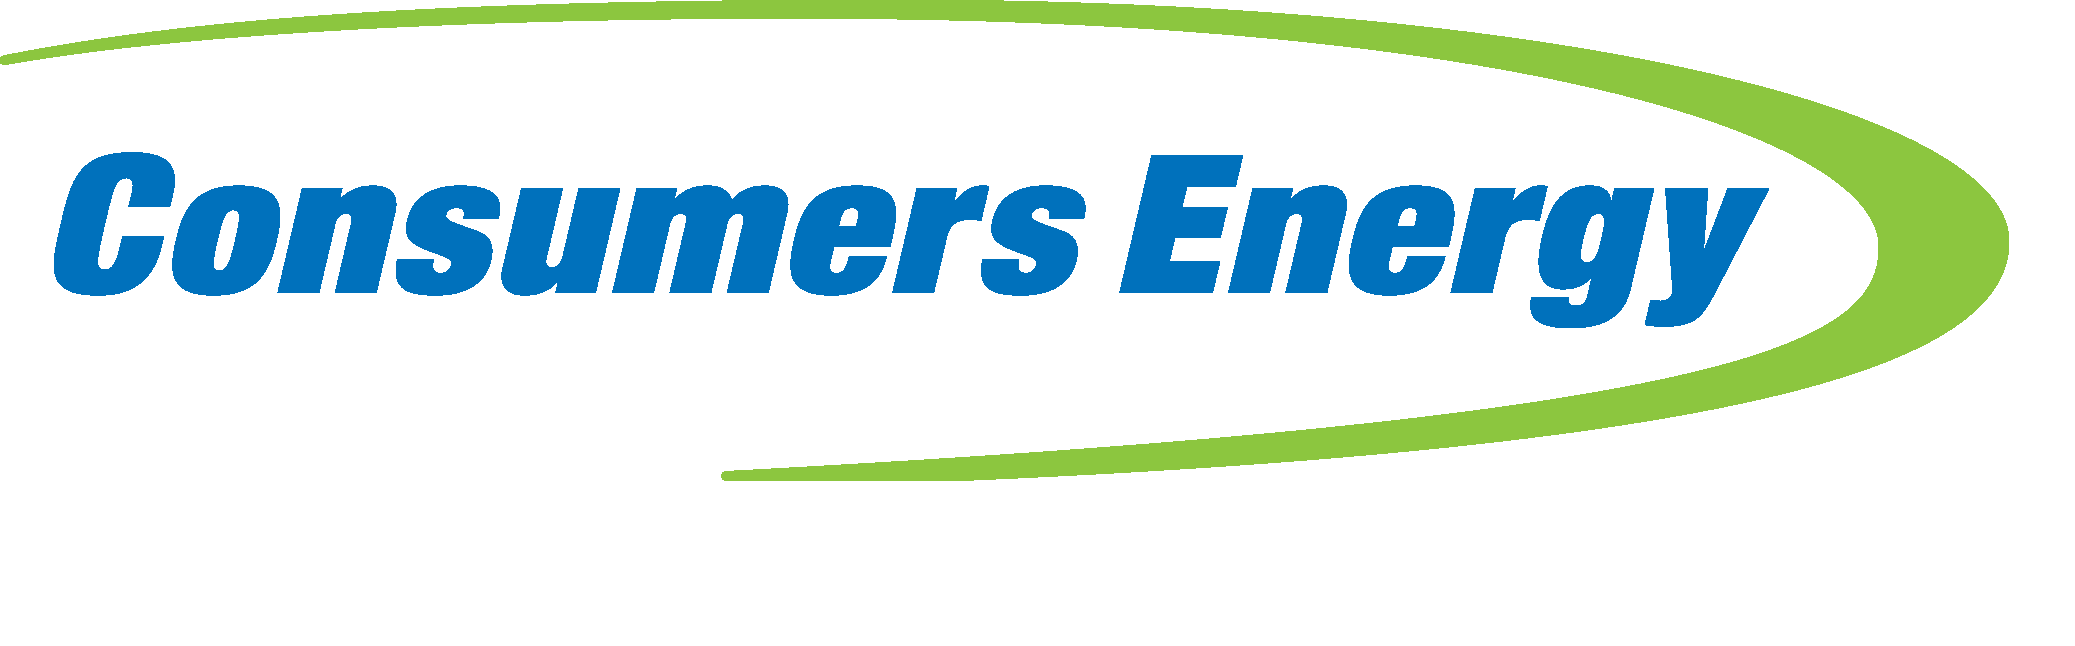 consumers-energy-logo.png